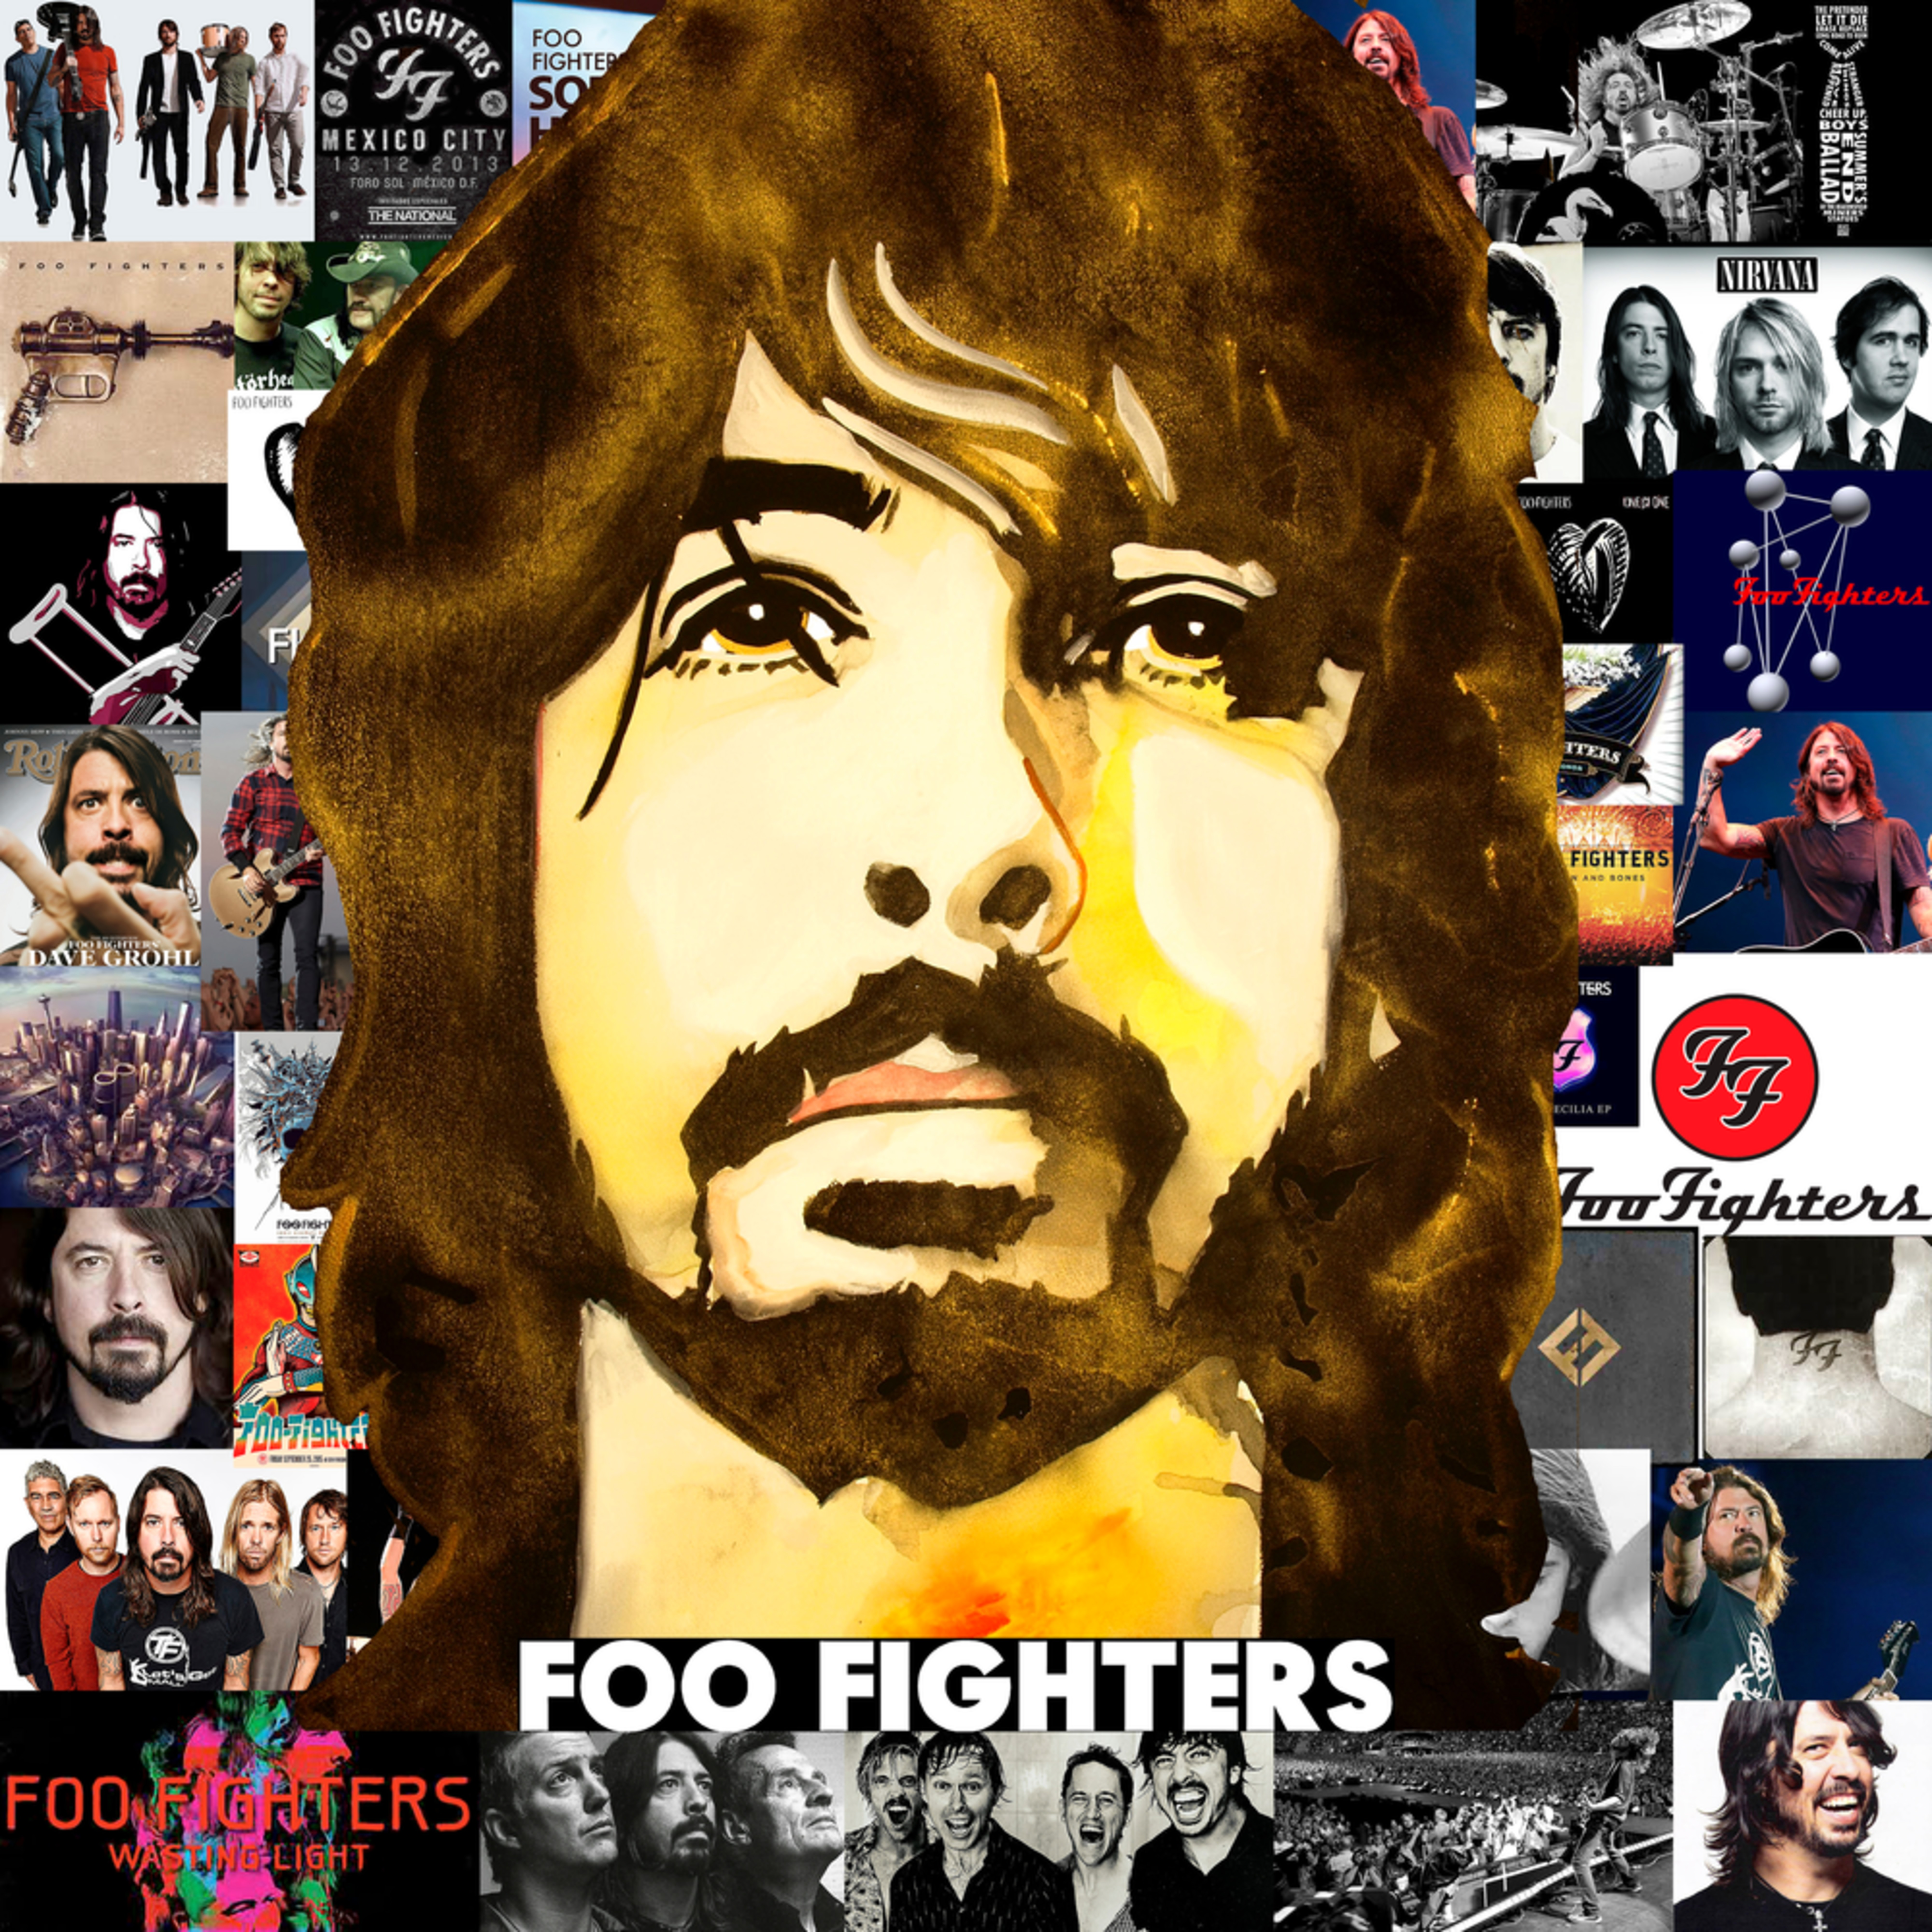 Dave grohl pop 36 b84aln